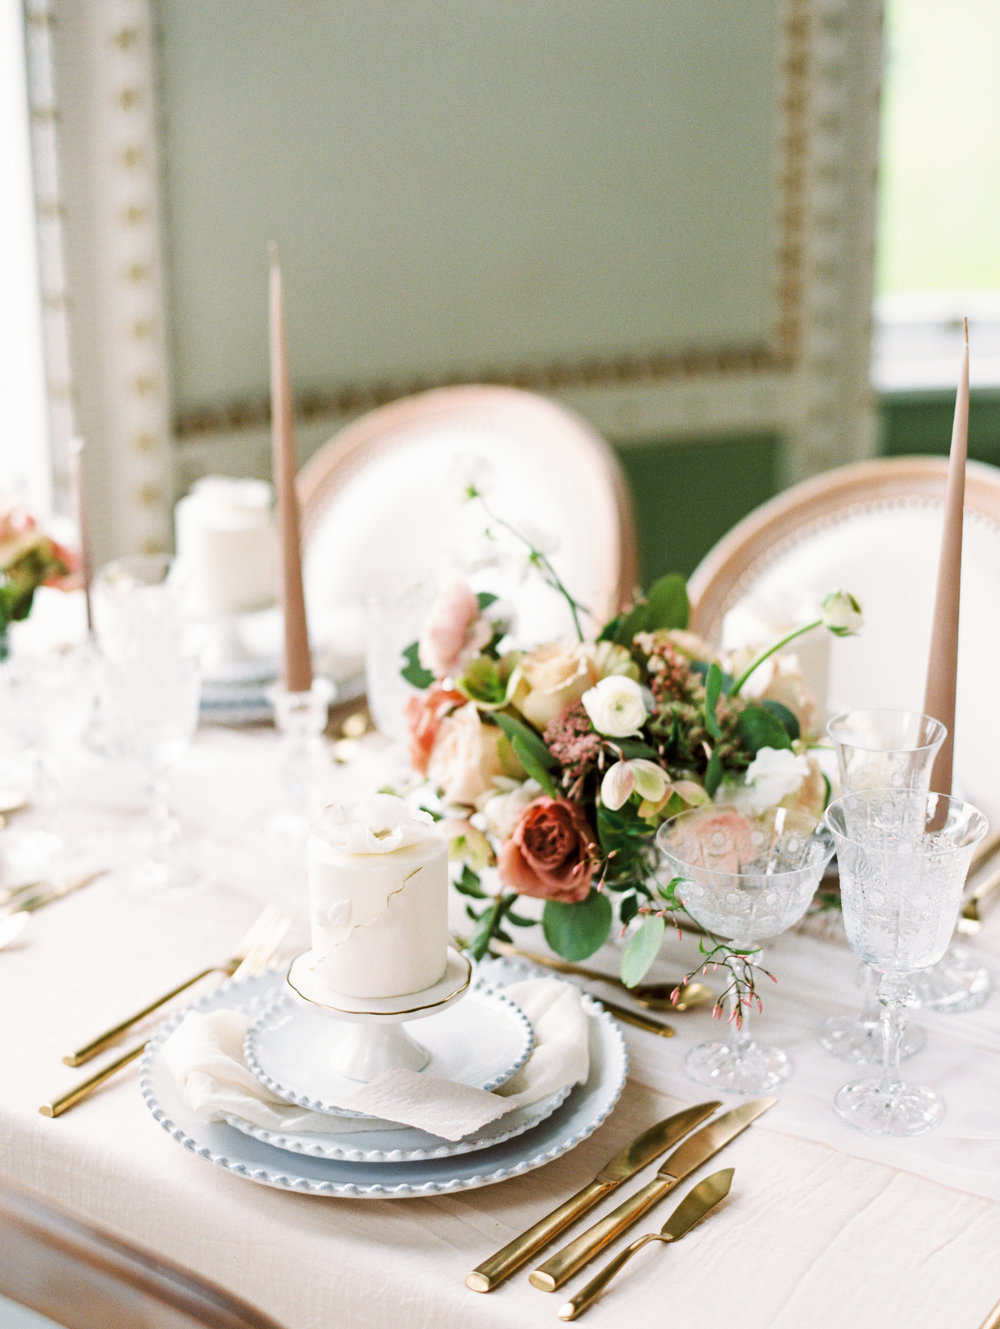 The Timeless Stylist-Elegant and Romantic Wedding Styling-Fine Art Tablescape.jpg